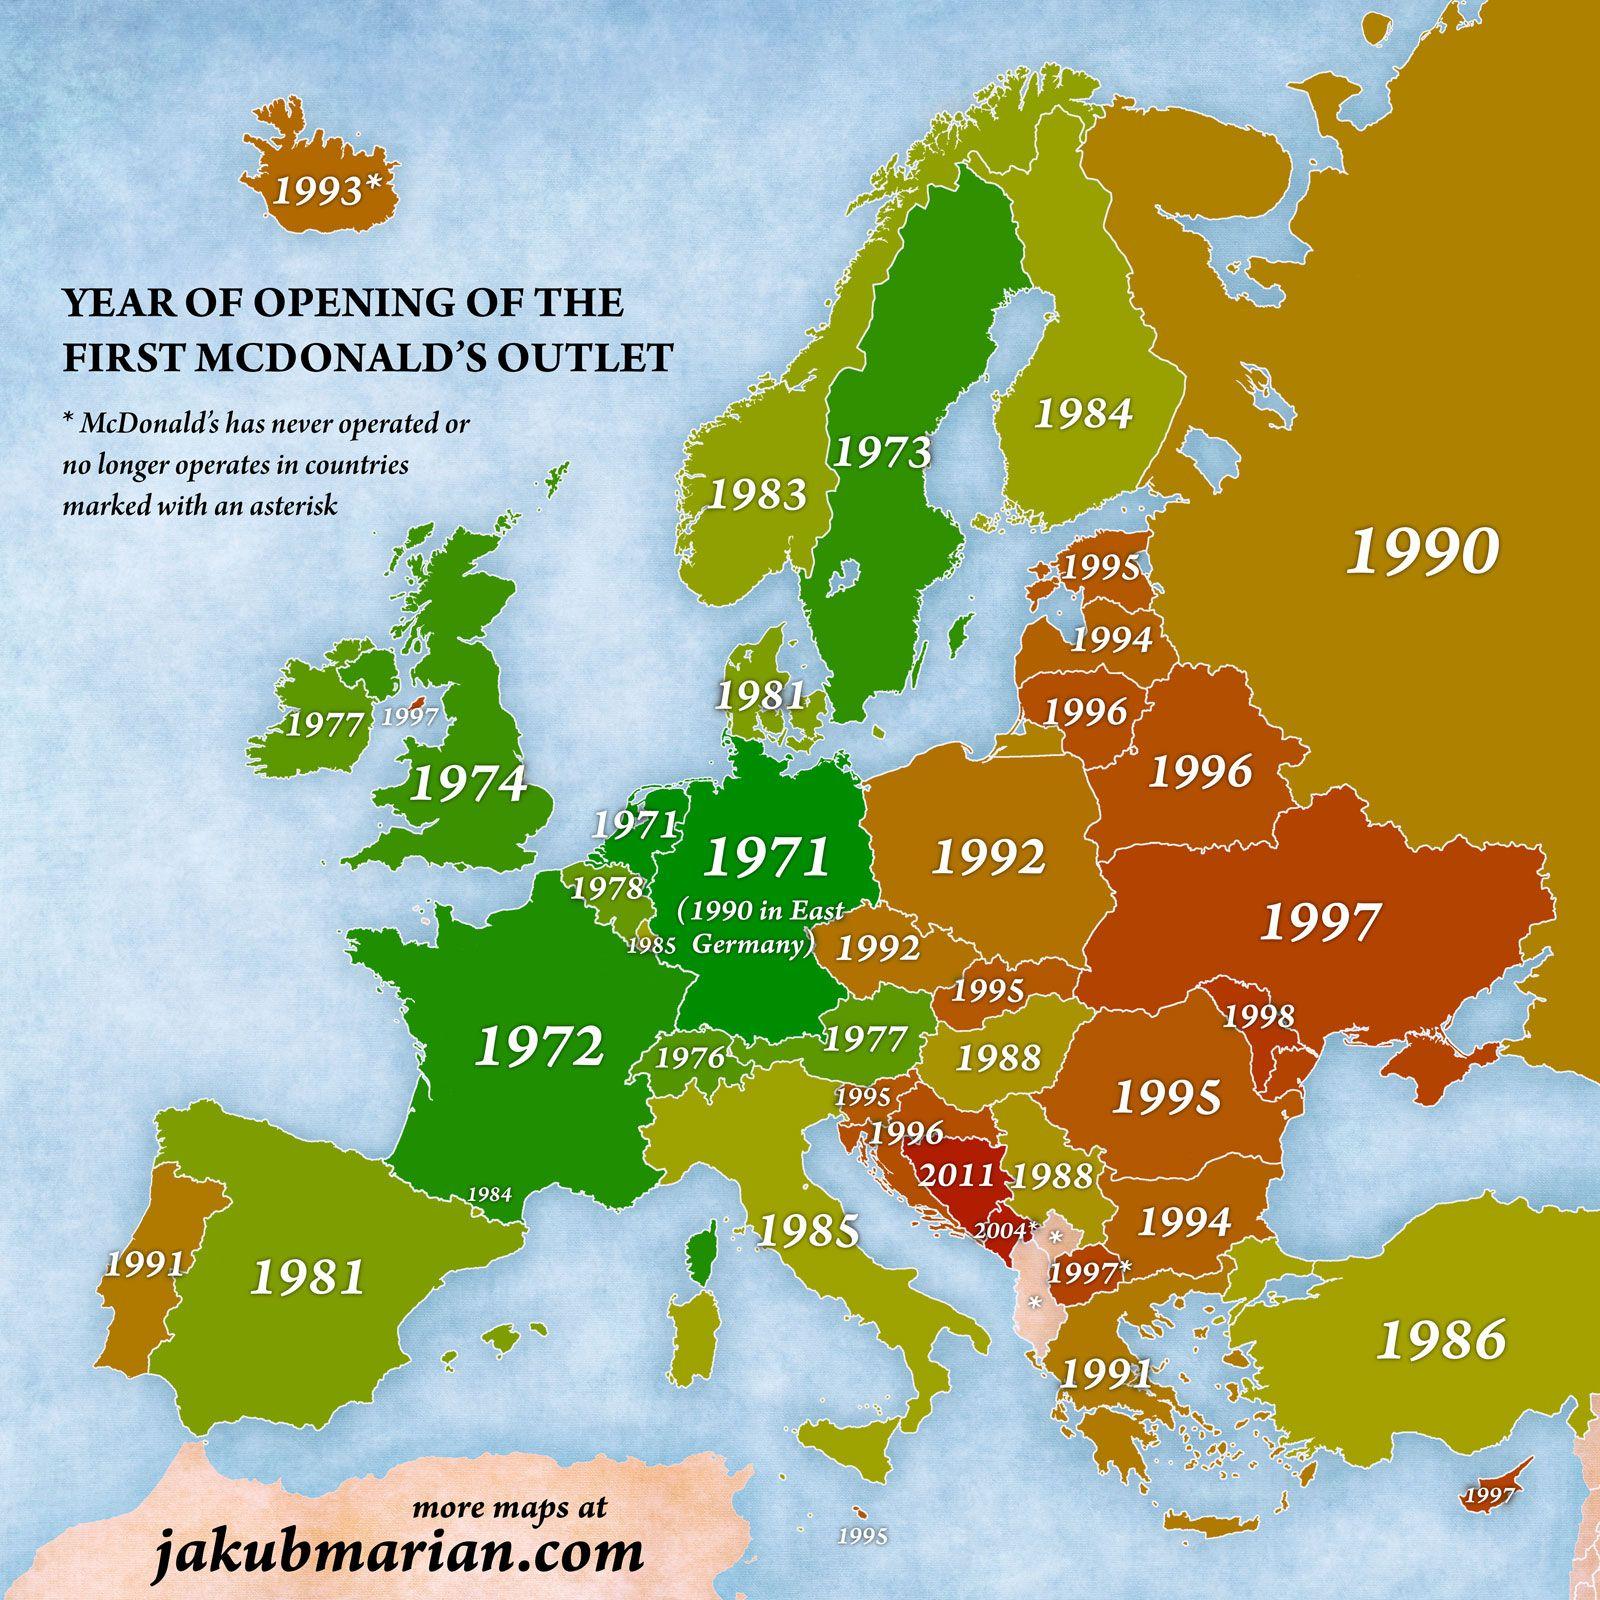 Munich Map Of Europe The first McDonald's restaurant in Europe opened in 1971 in the